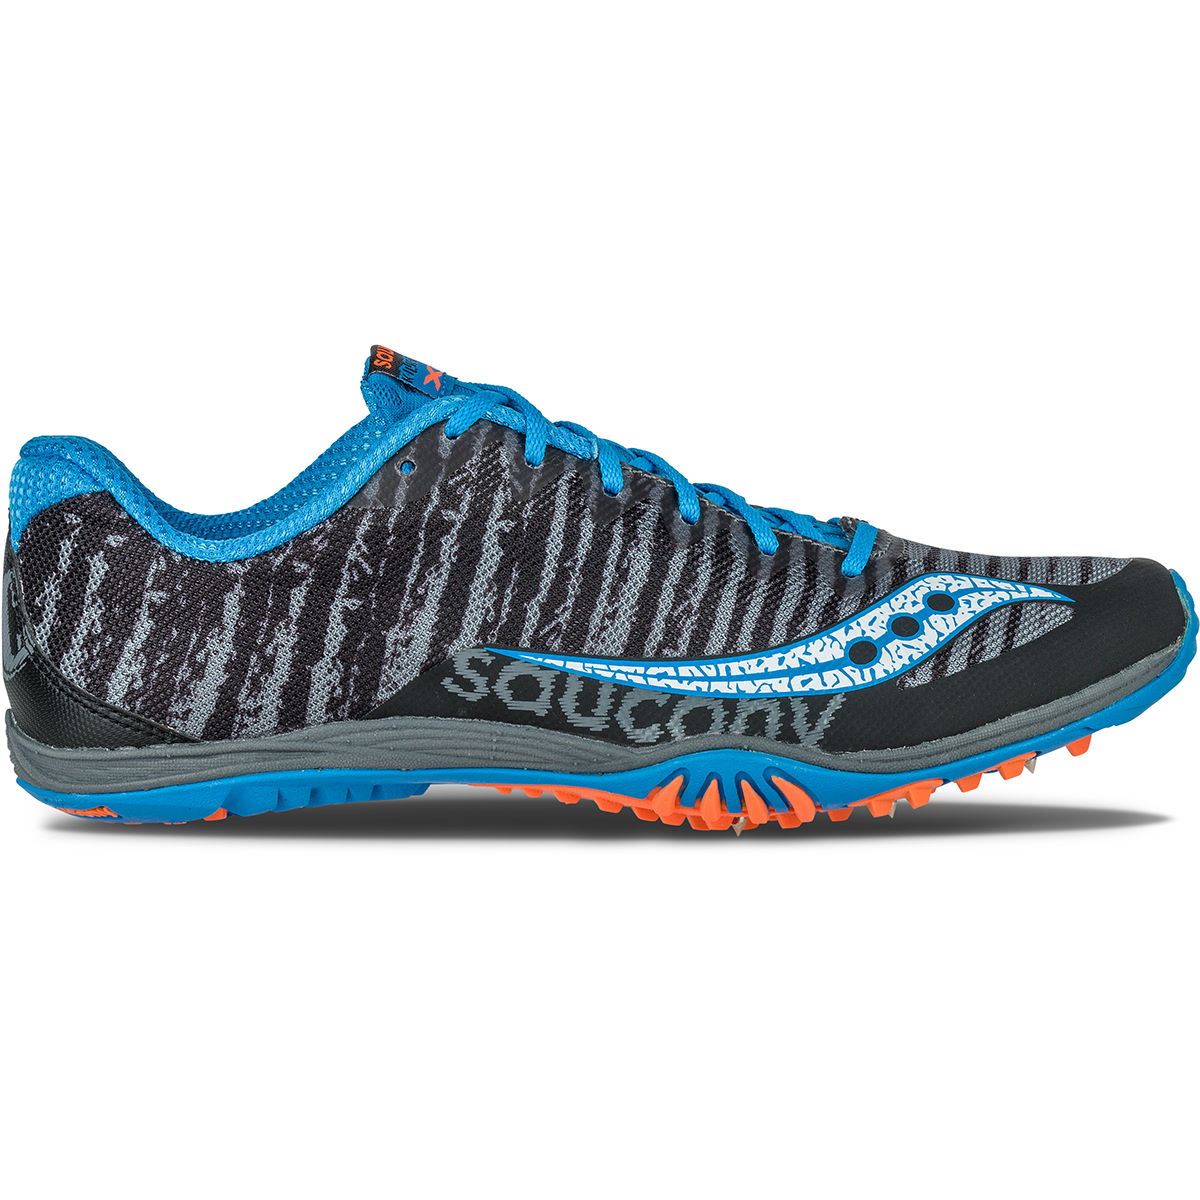 Chaussures de cross-country Saucony Kilkenny (AH16) - 12 UK Black/Carolina Chaussures de running à pointes